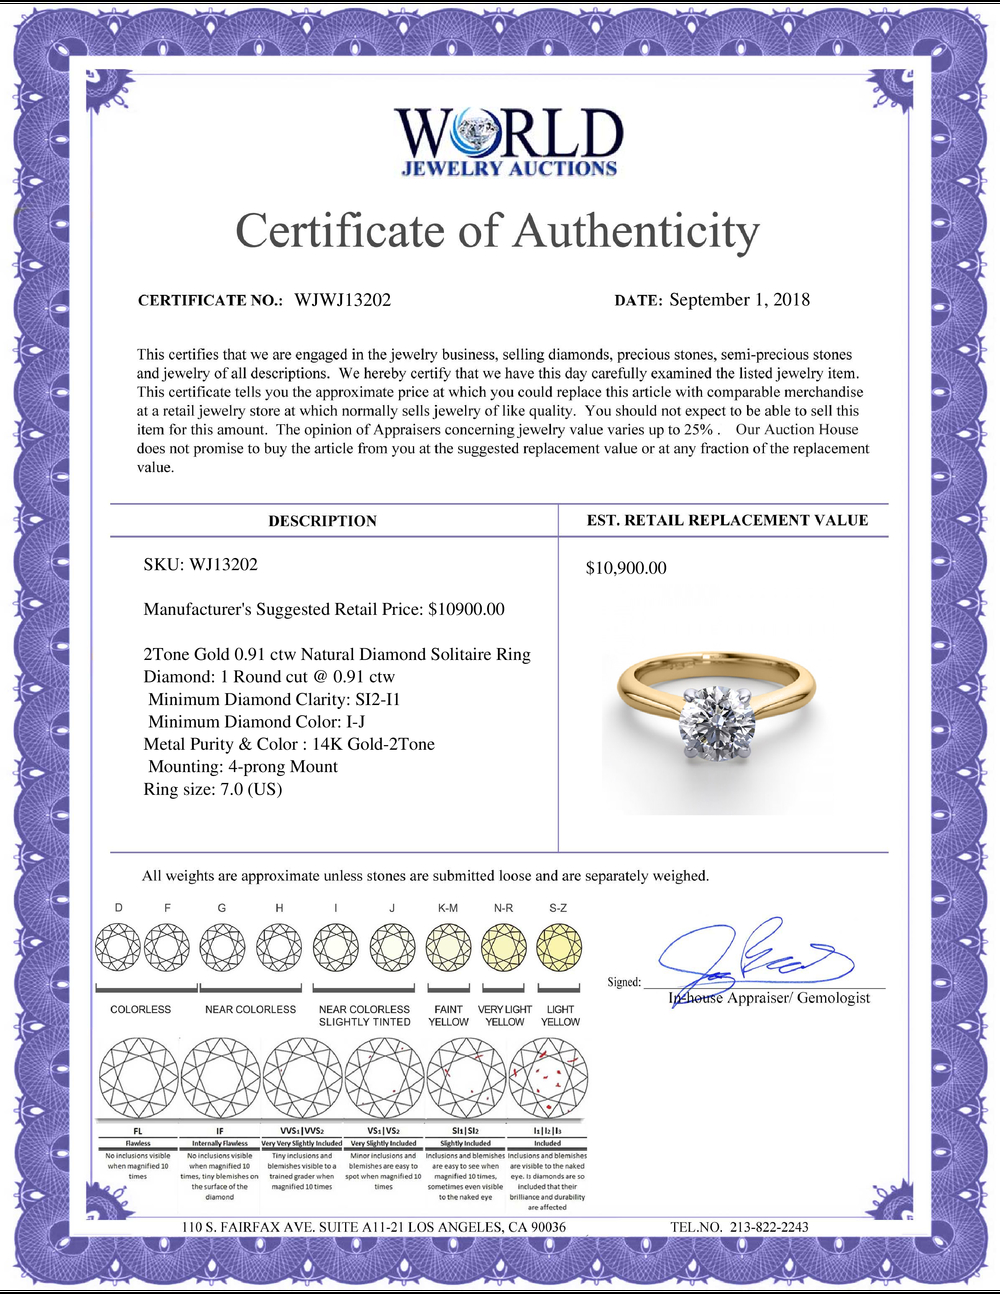 Lot 4110: 14K 2Tone Gold 0.91 ctw Natural Diamond Solitaire Ring - REF-243R2M-WJ13202